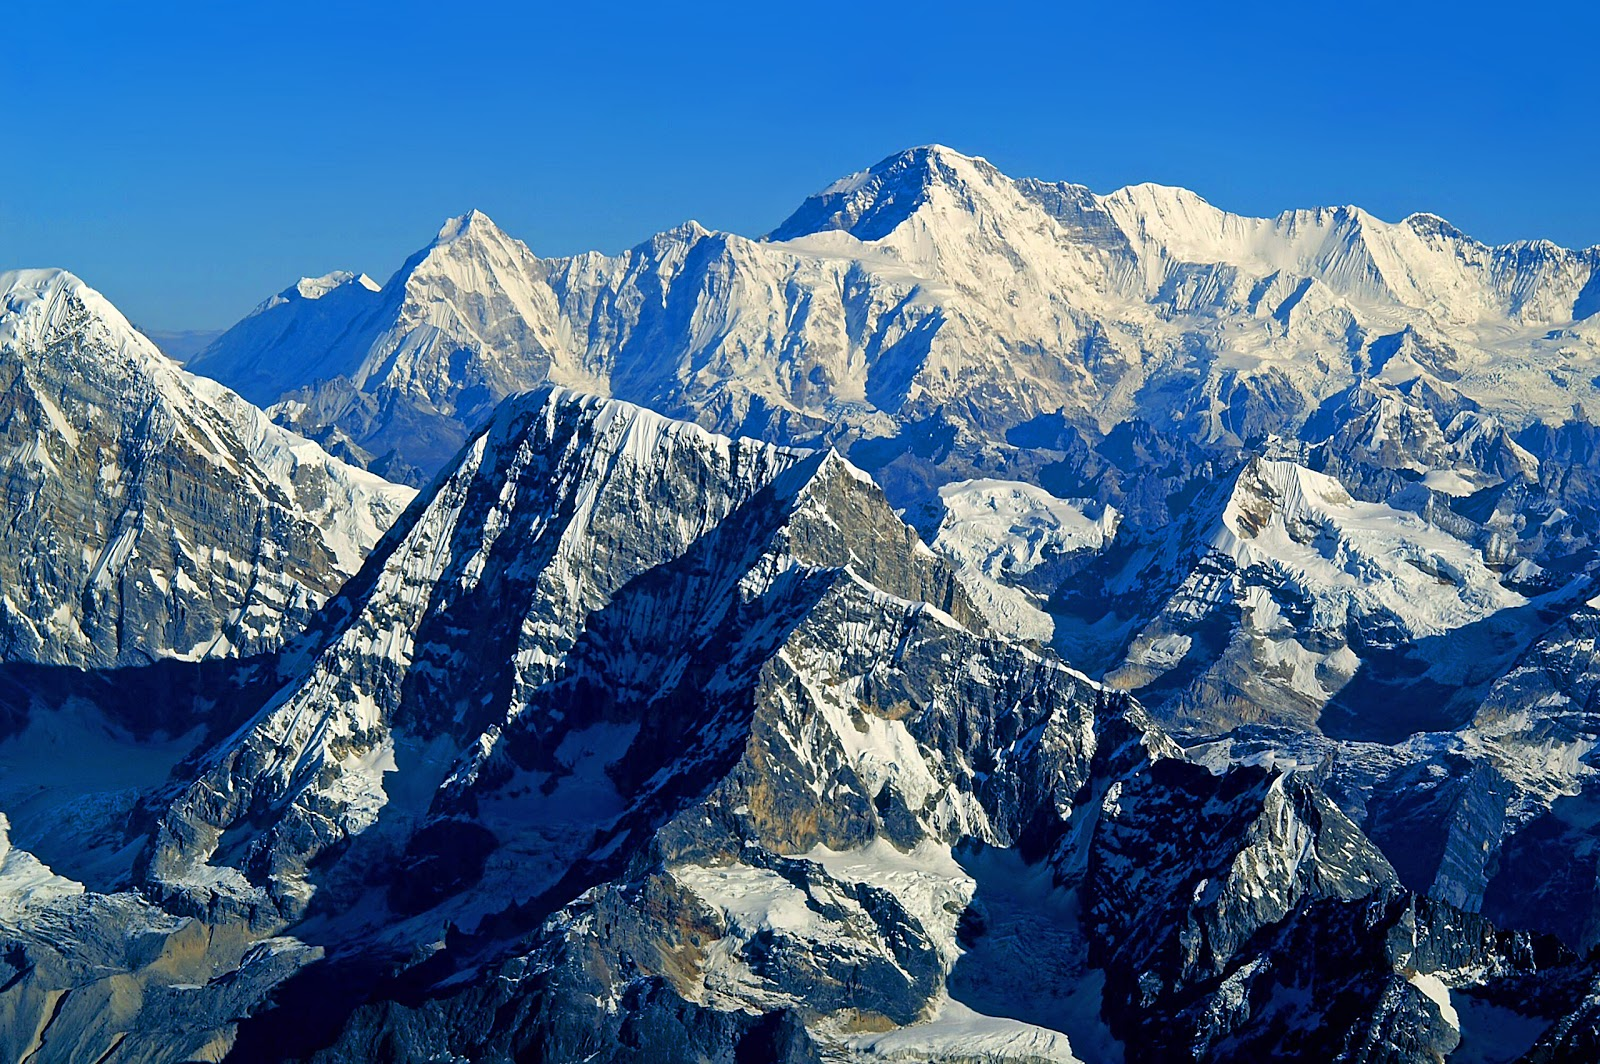 himalaya mountains hd wallpaper - photo #16